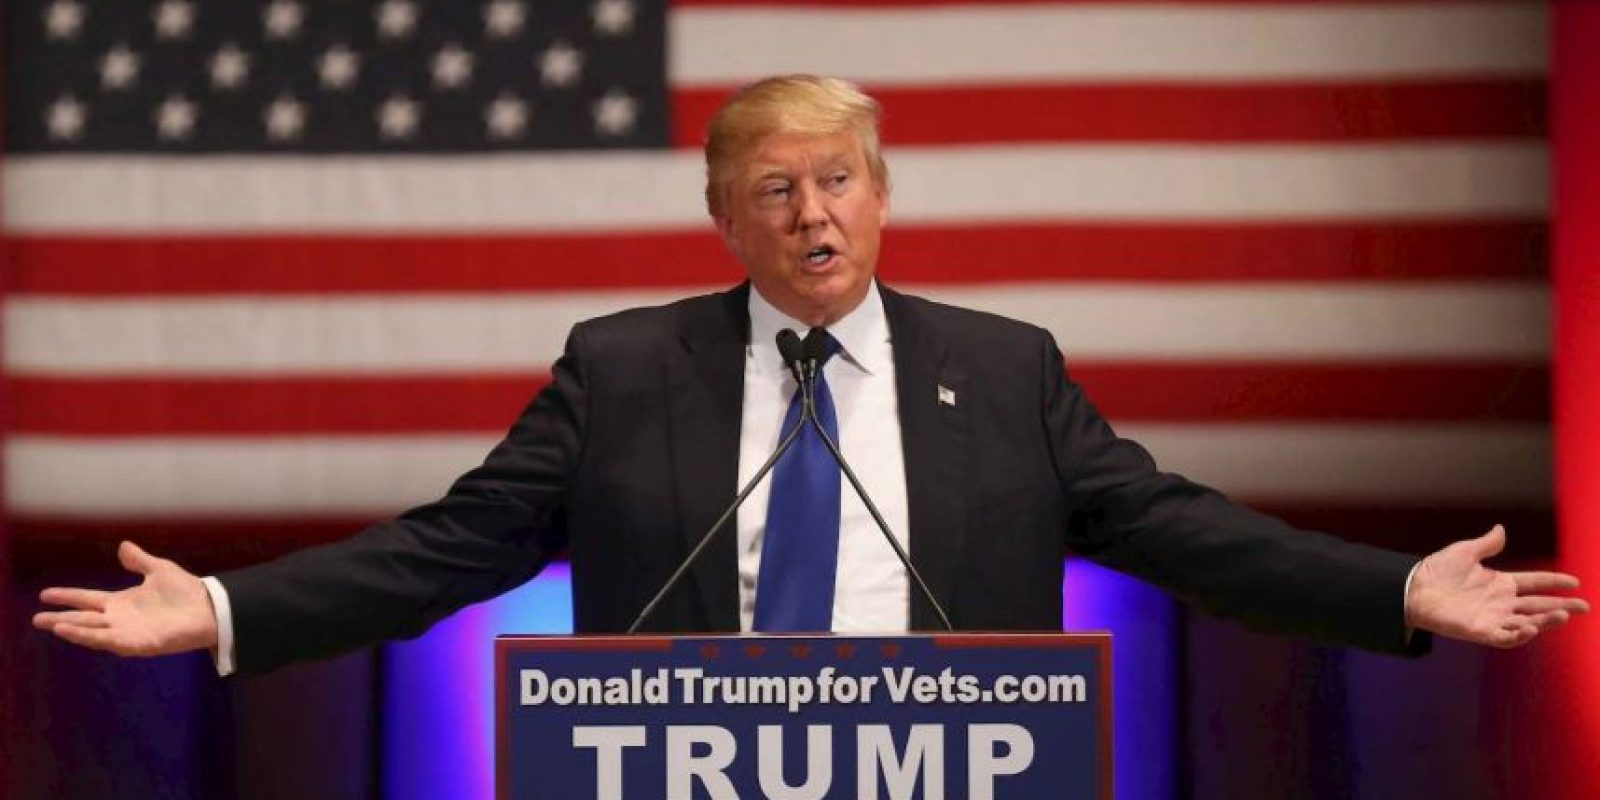 El virtual candidato presidencial, Donald Trump.